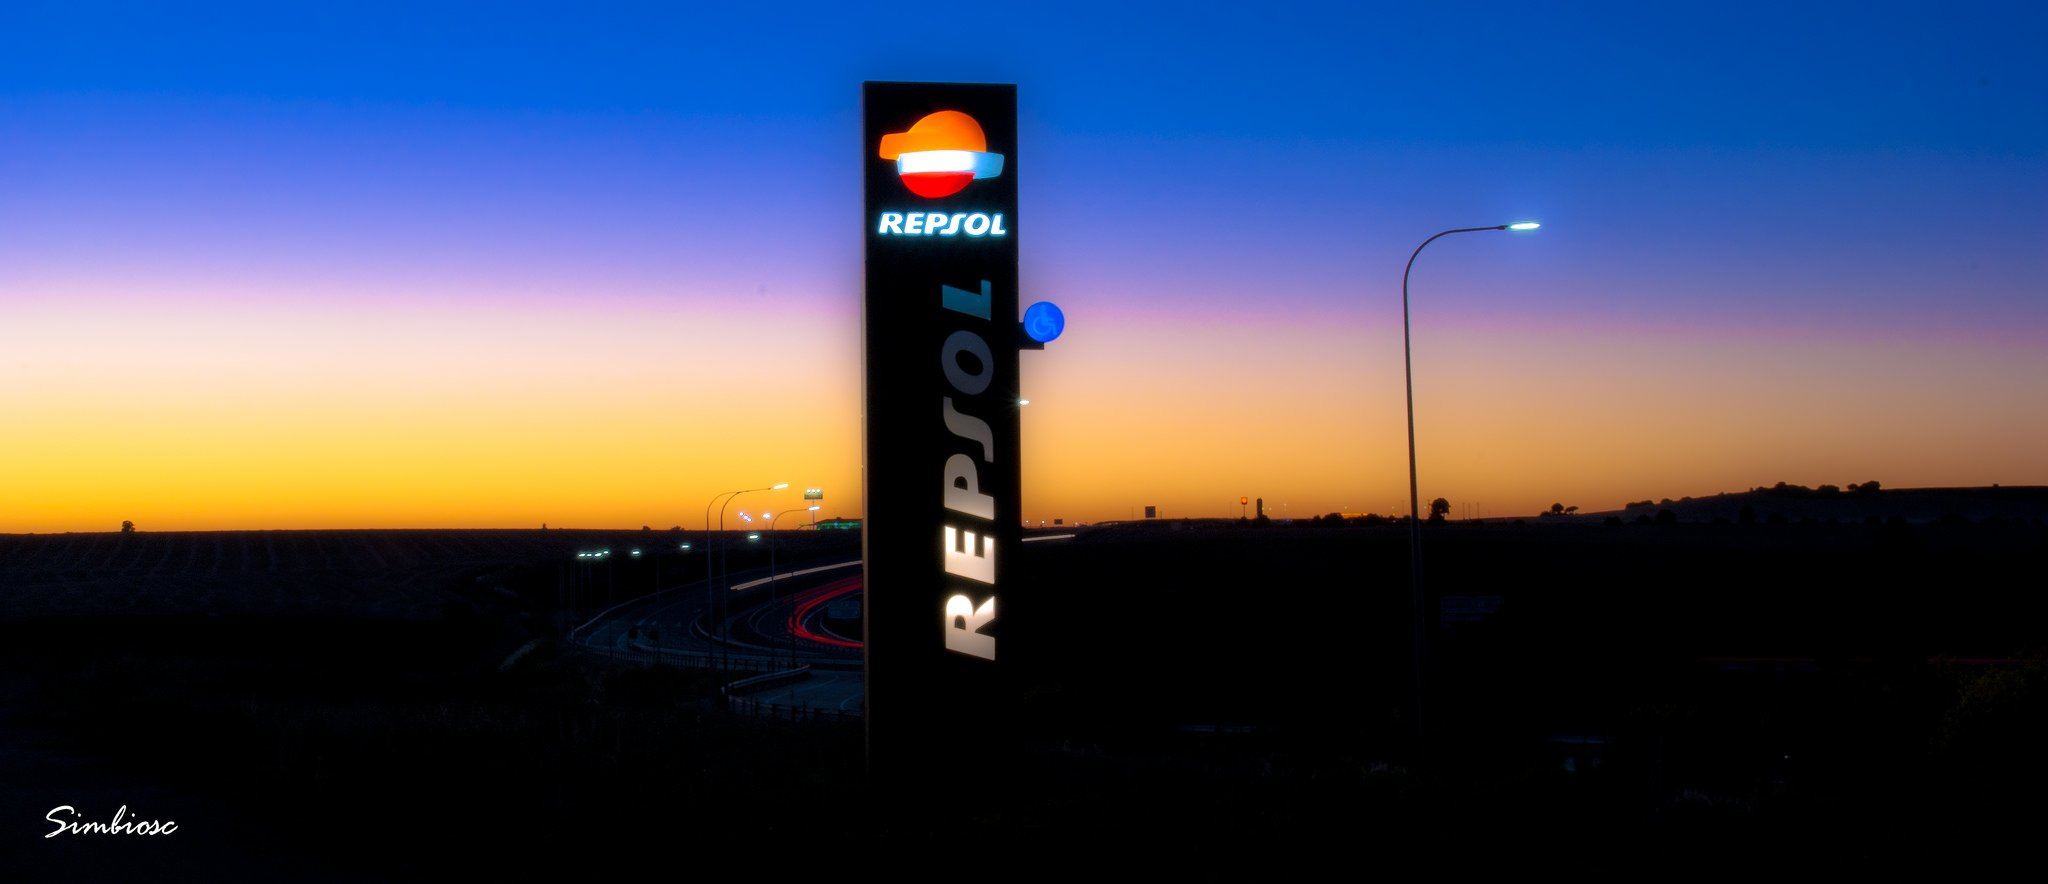 repsol flickr